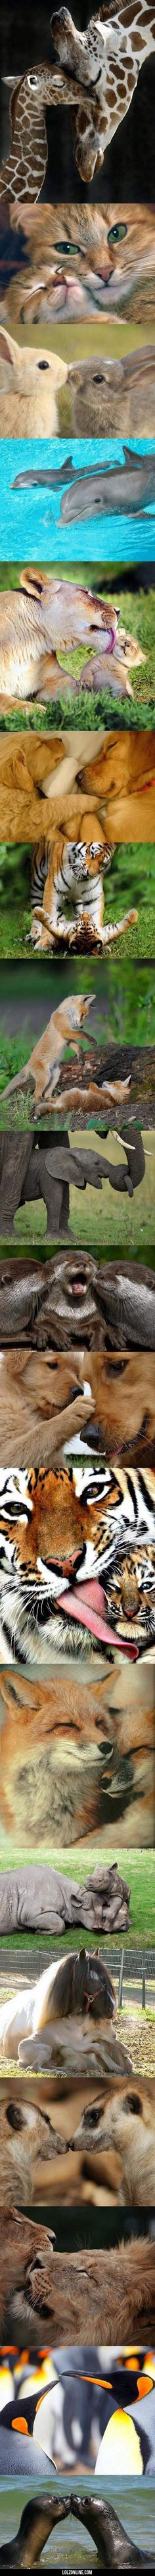 Animal Kingdom Love #lol #haha #funny